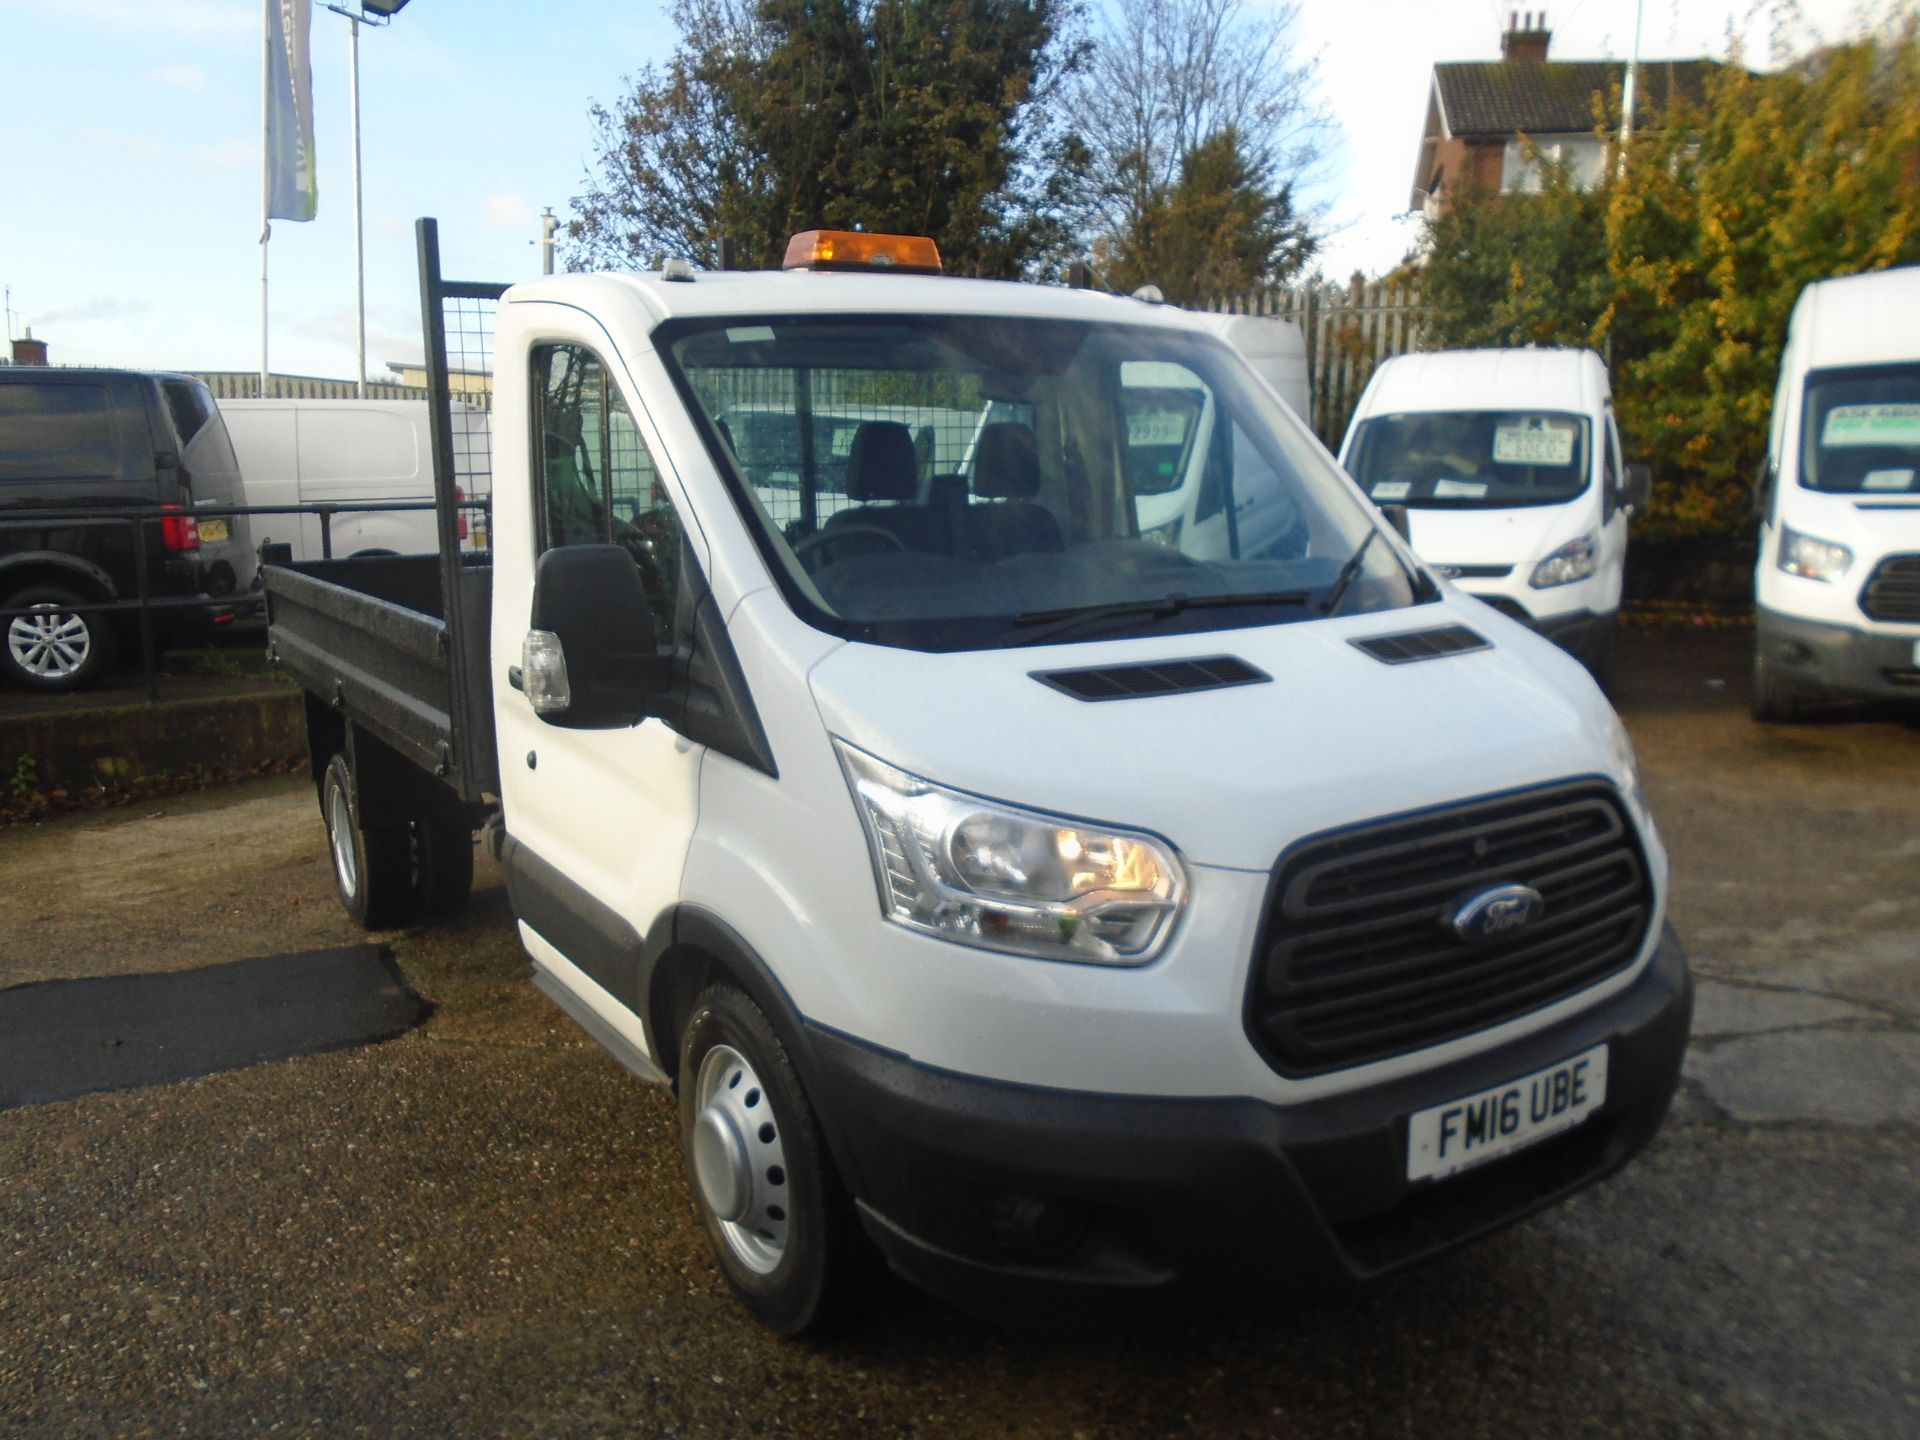 2016 Ford Transit 2.2 Tdci 125Ps Chassis Cab (FM16UBE)